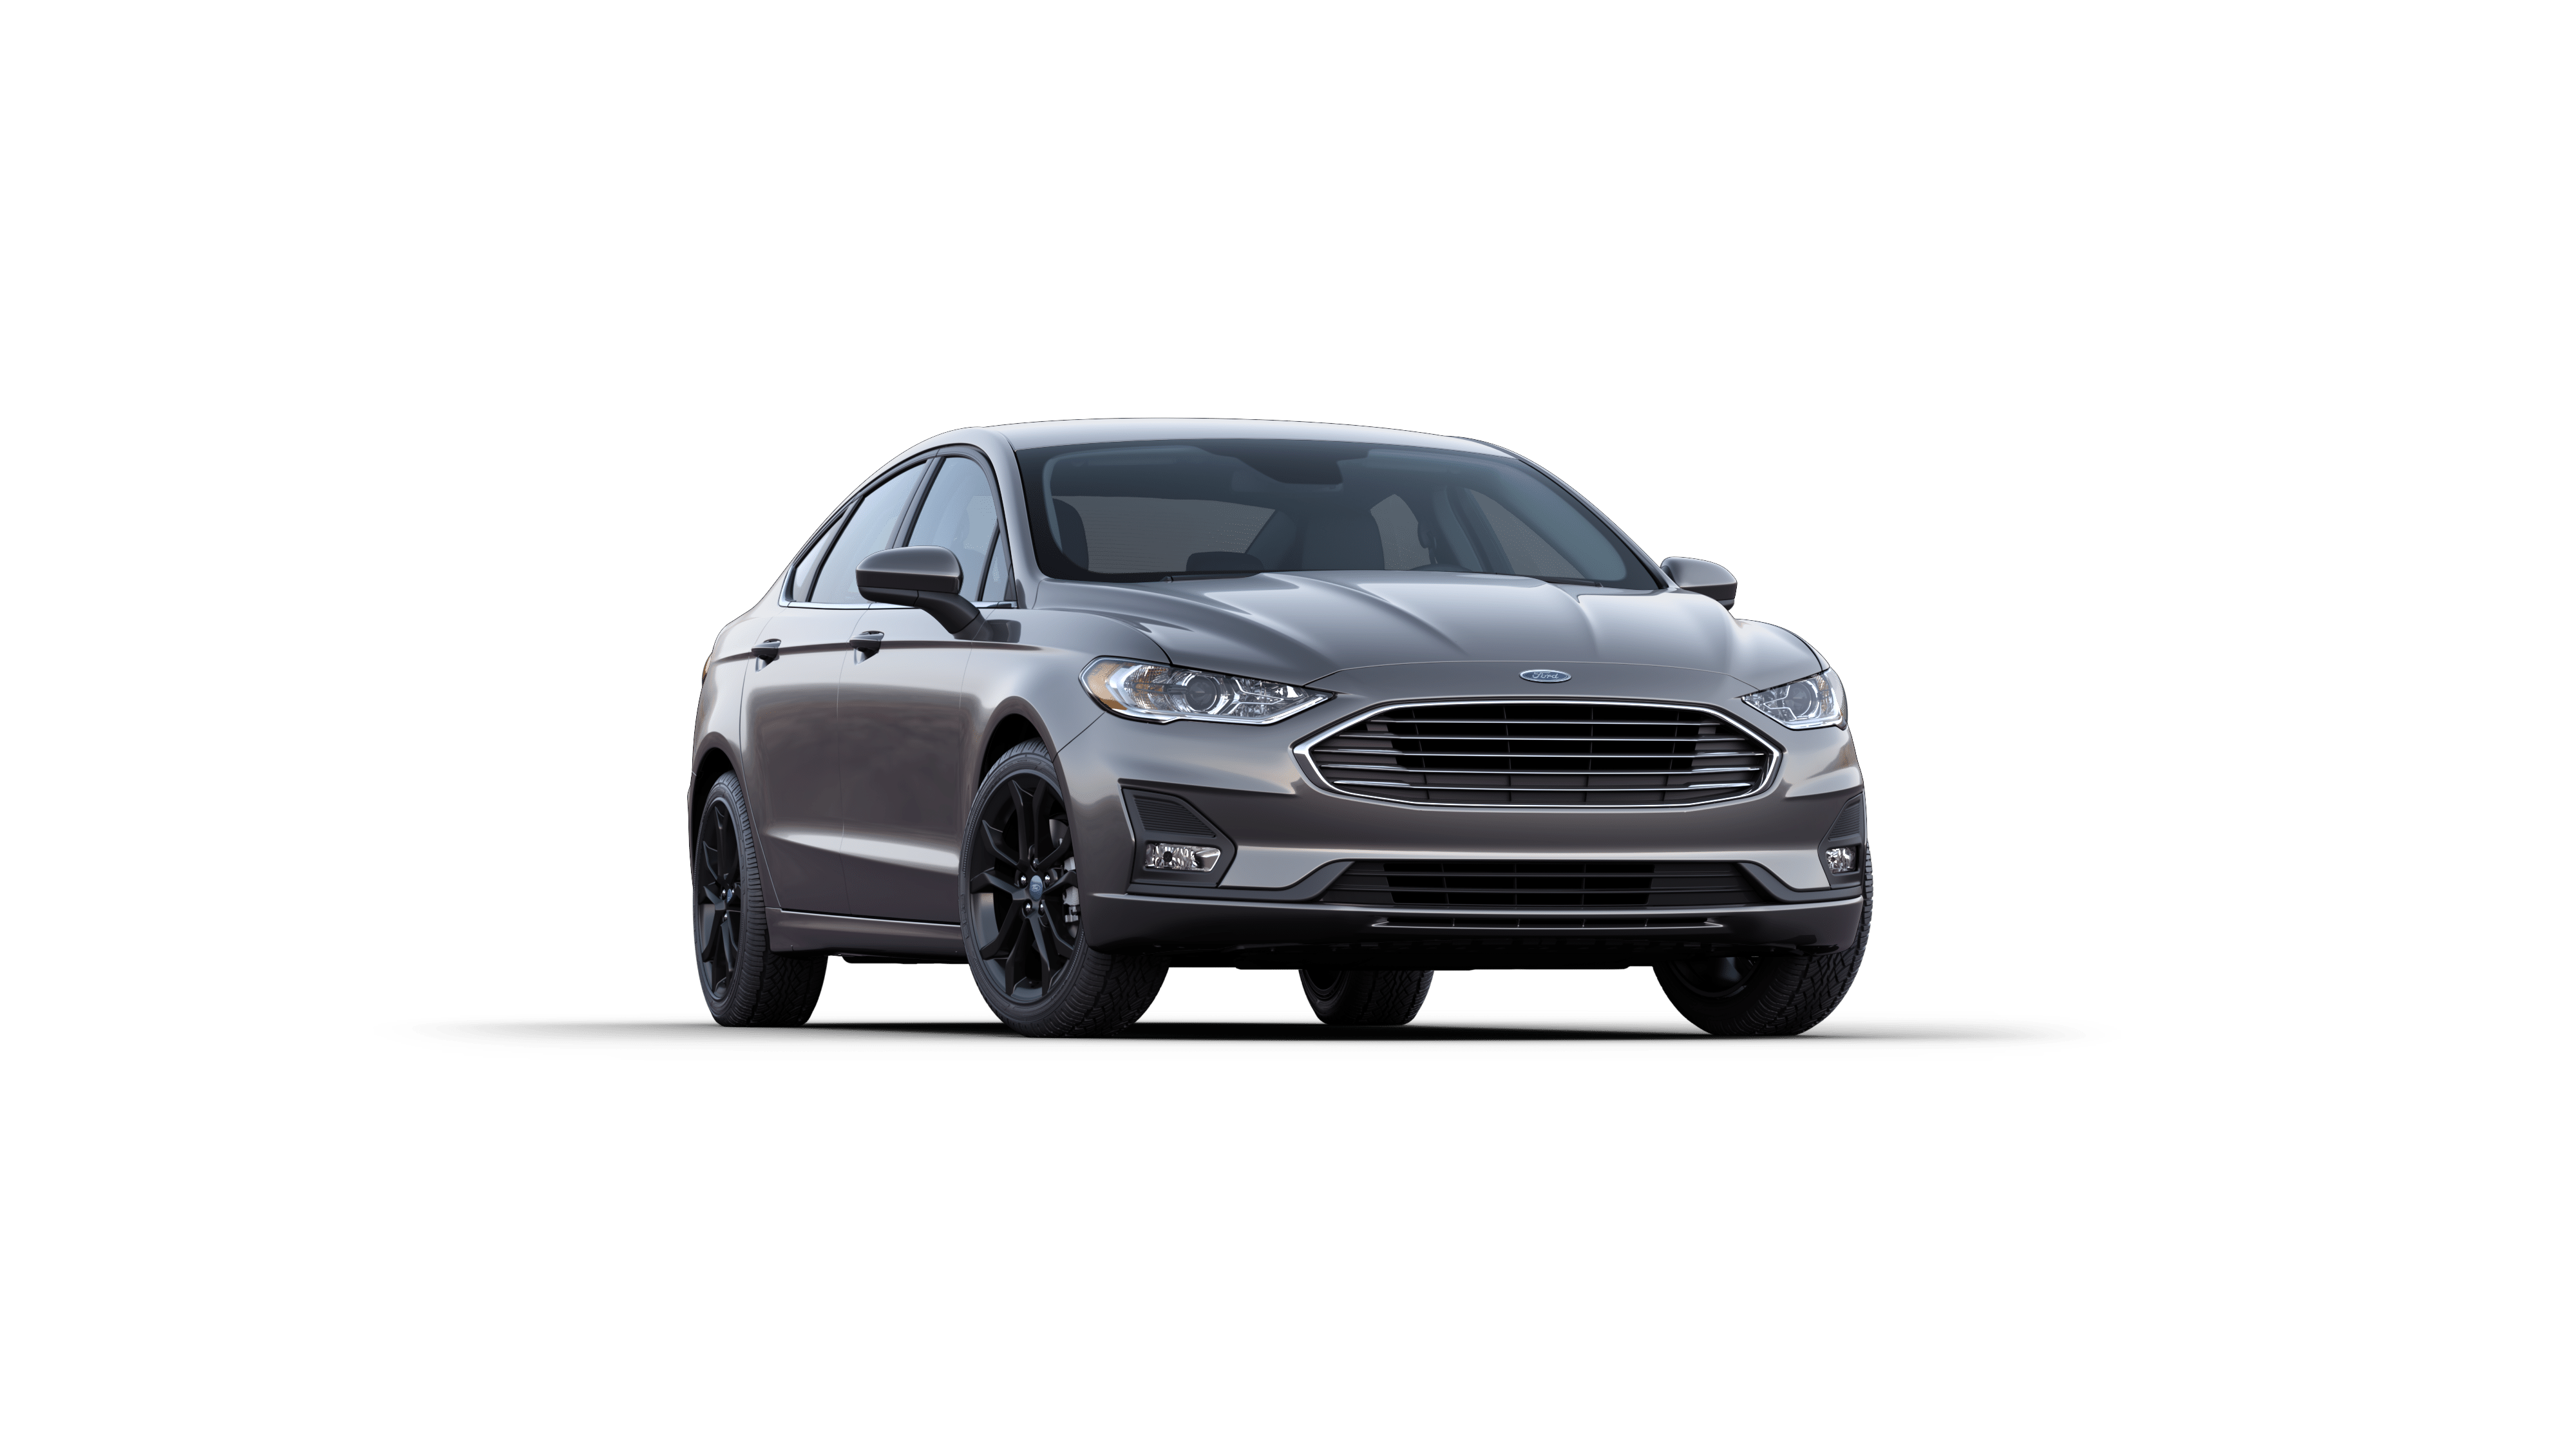 2019 Ford Fusion for sale in Lihue - 3FA6P0HD7KR216837 - Kuhio Ford